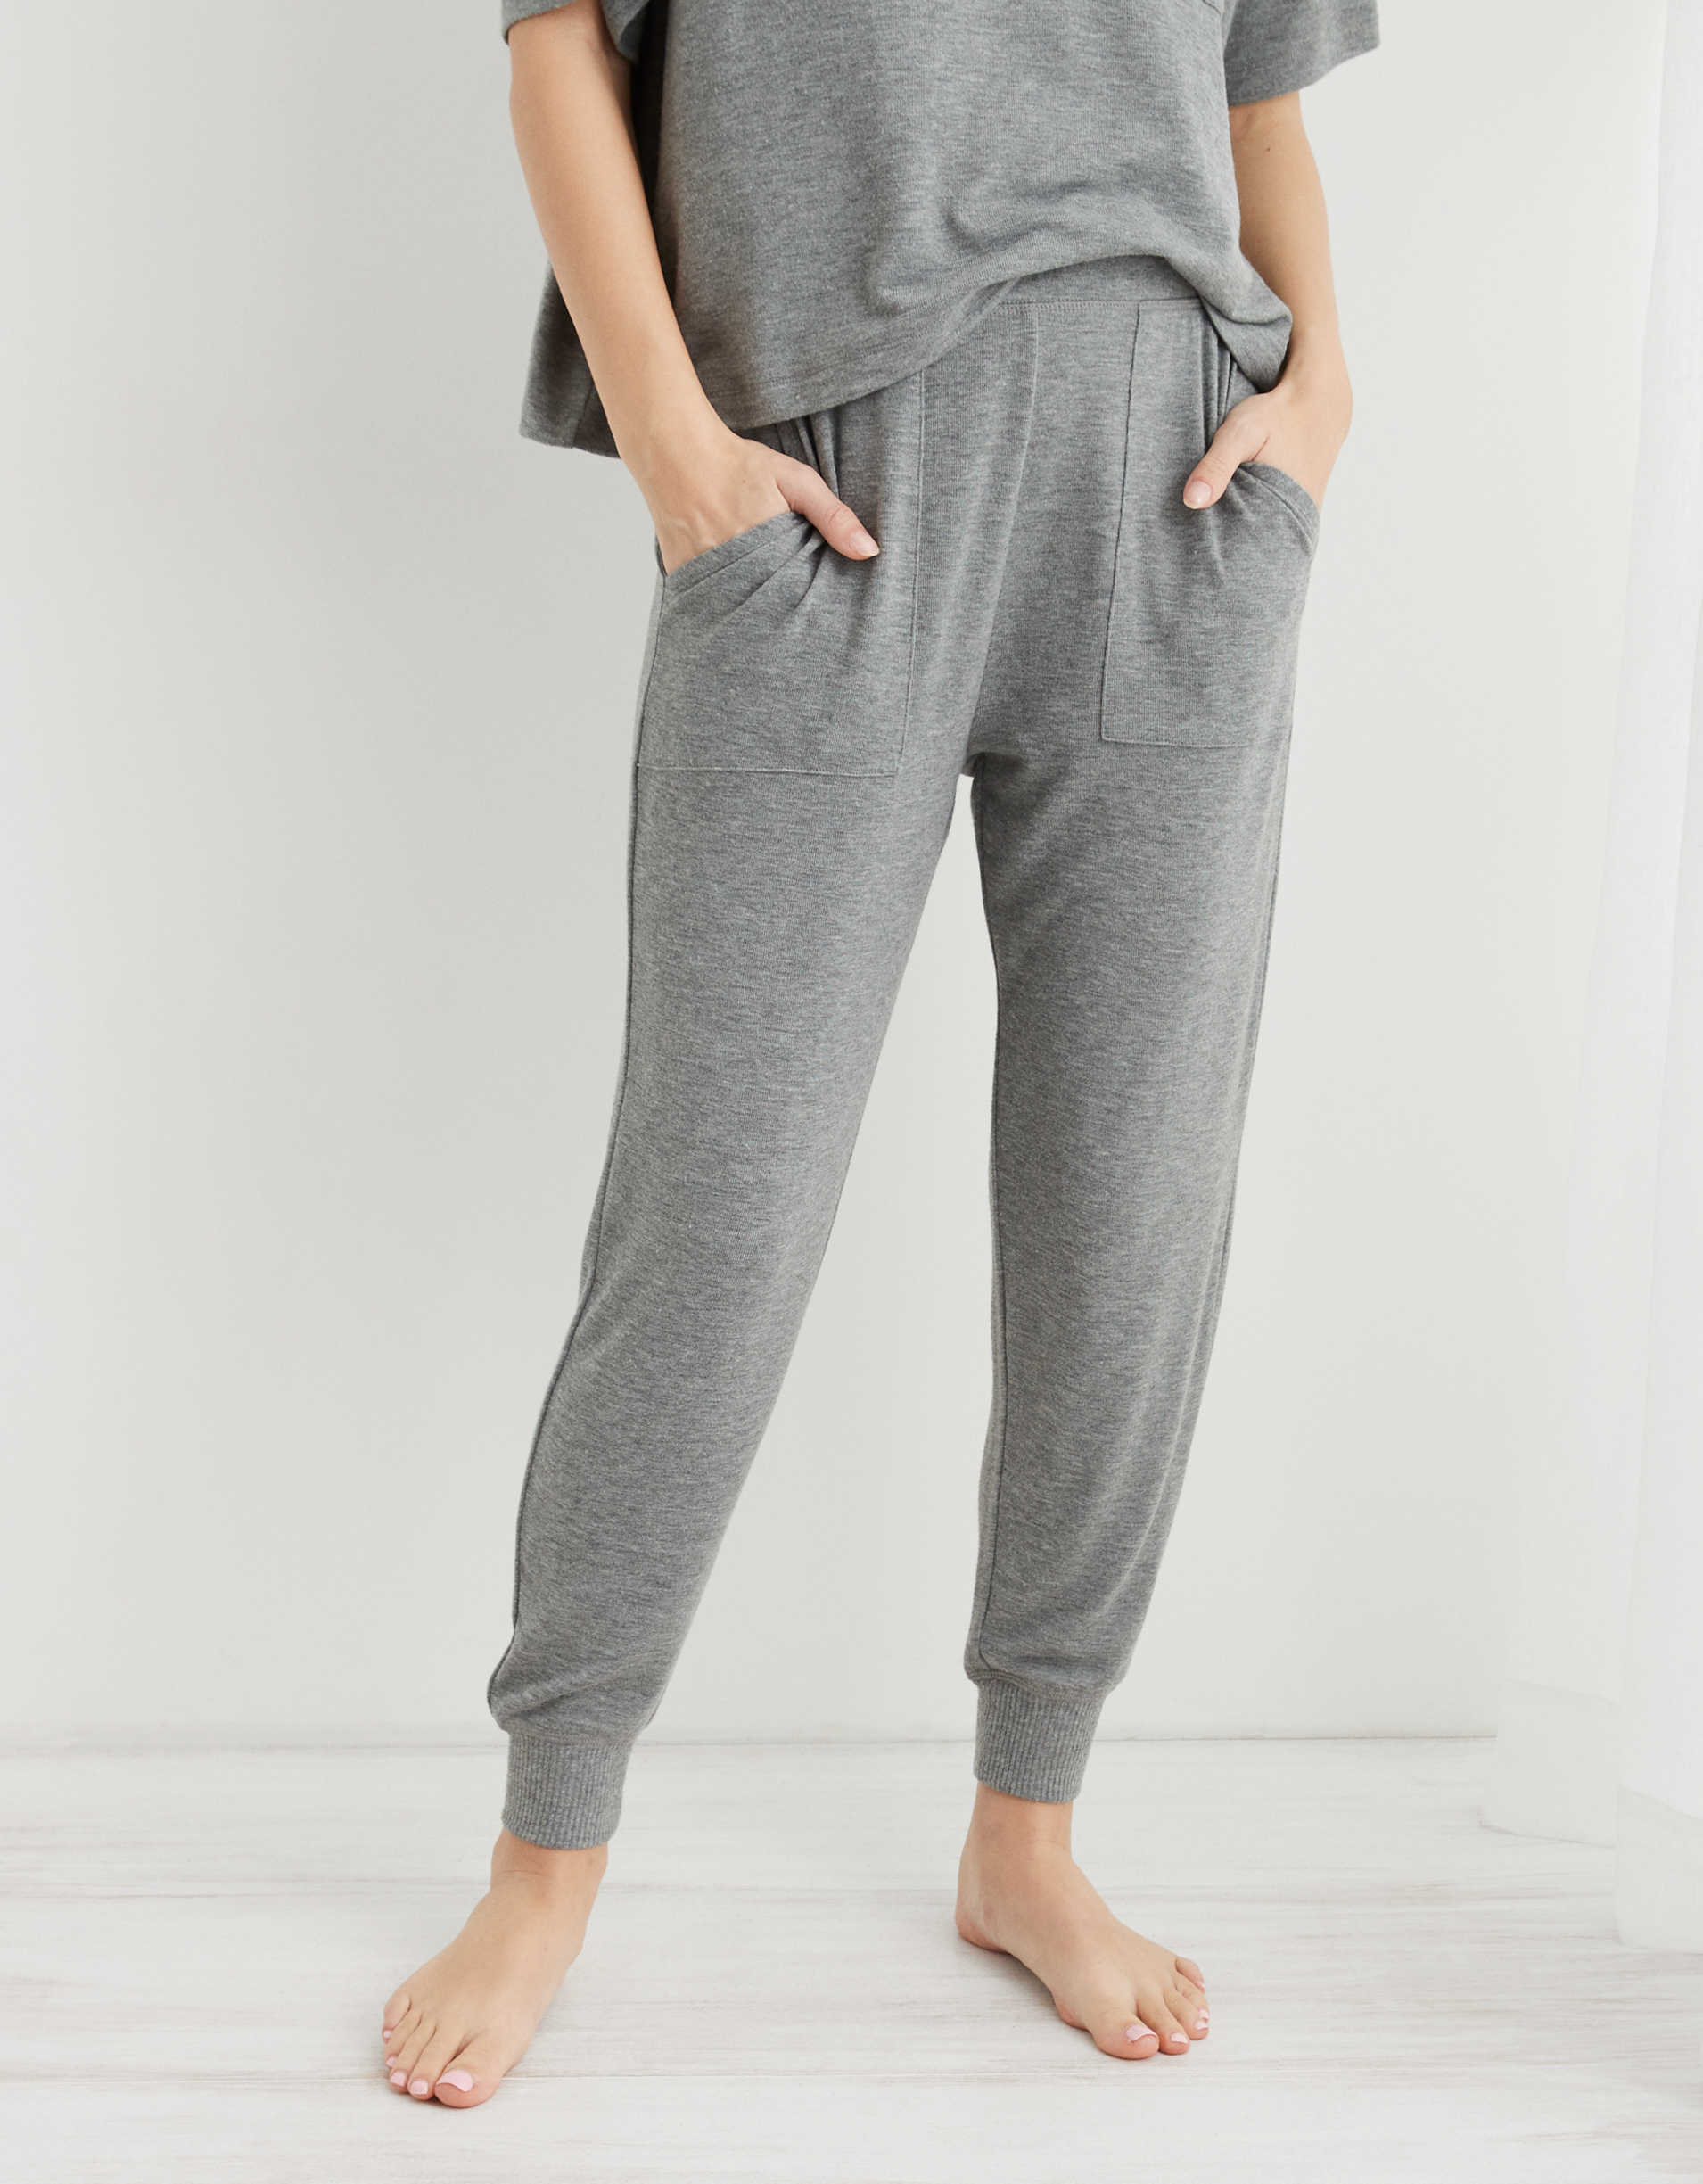 Aerie Softest® Sleep Jogger